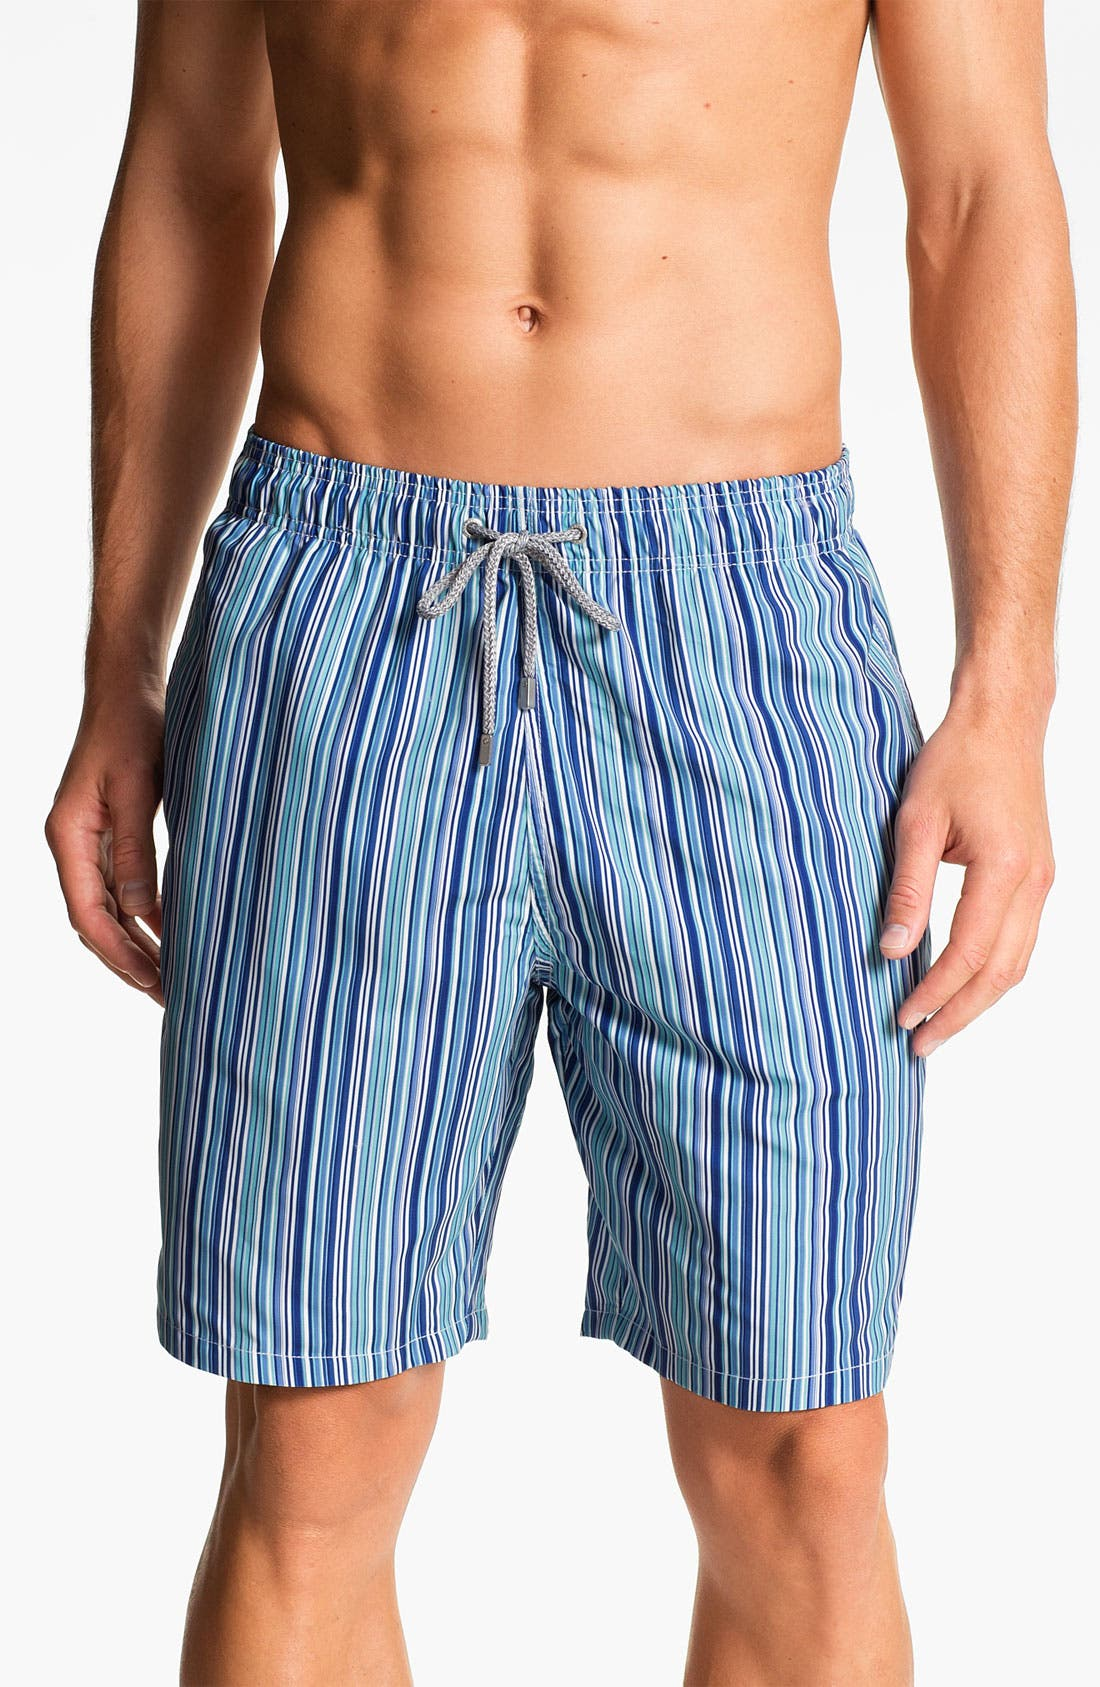 Alternate Image 1 Selected - Bugatchi Uomo Stripe Board Shorts